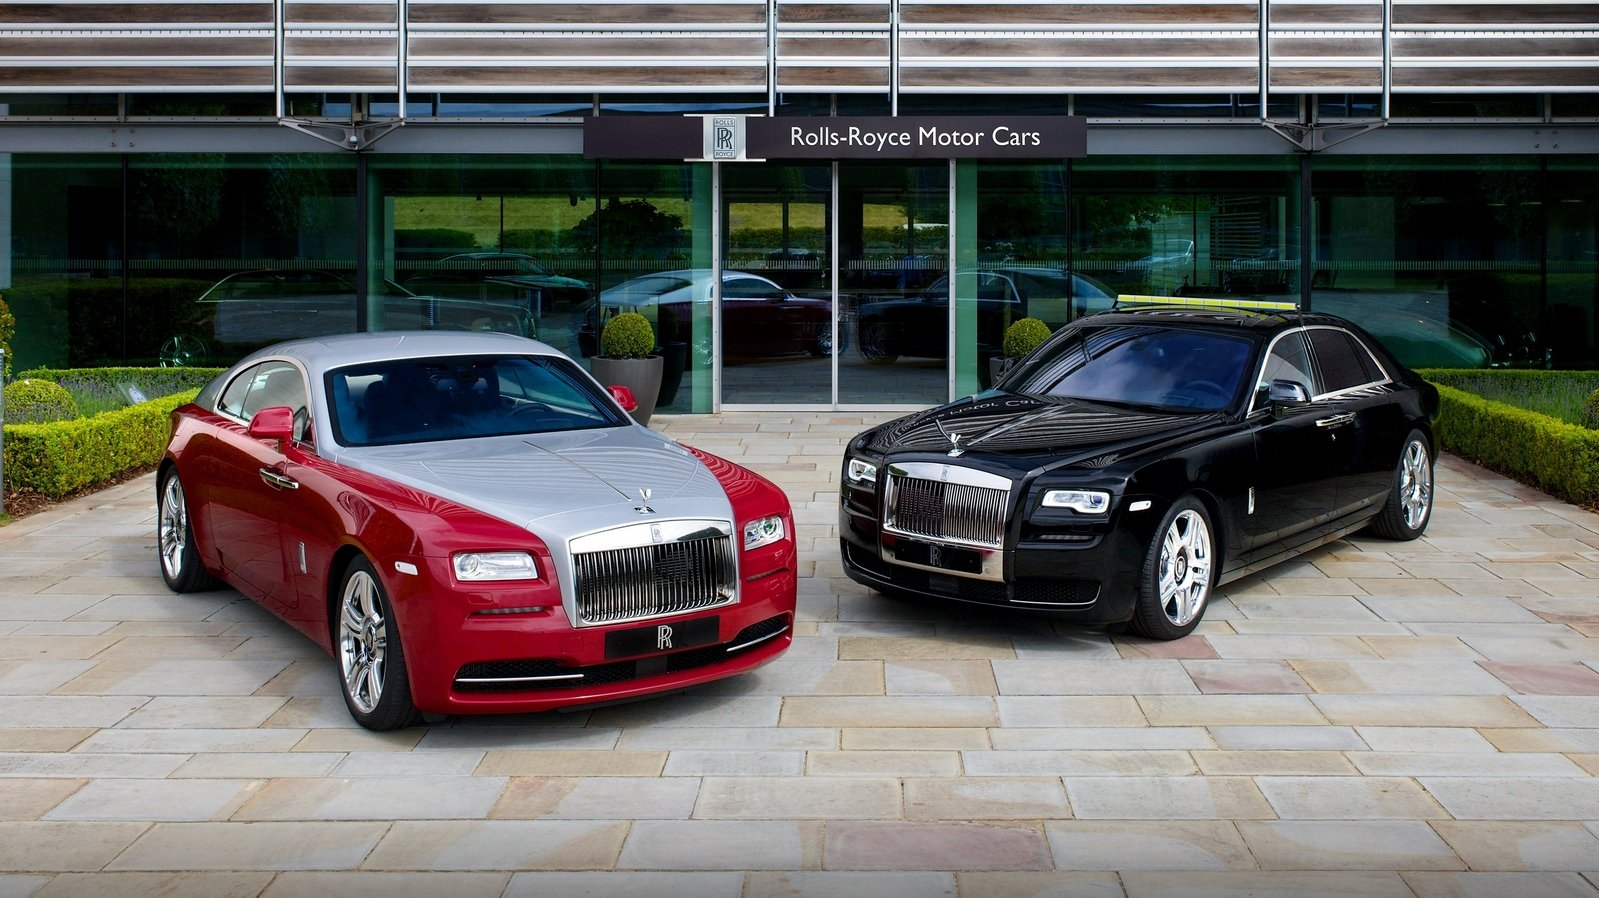 Roll Royce Car Hd Wallpaper Rolls Royce Unveiled Two One Off Cars At Goodwood Top Speed